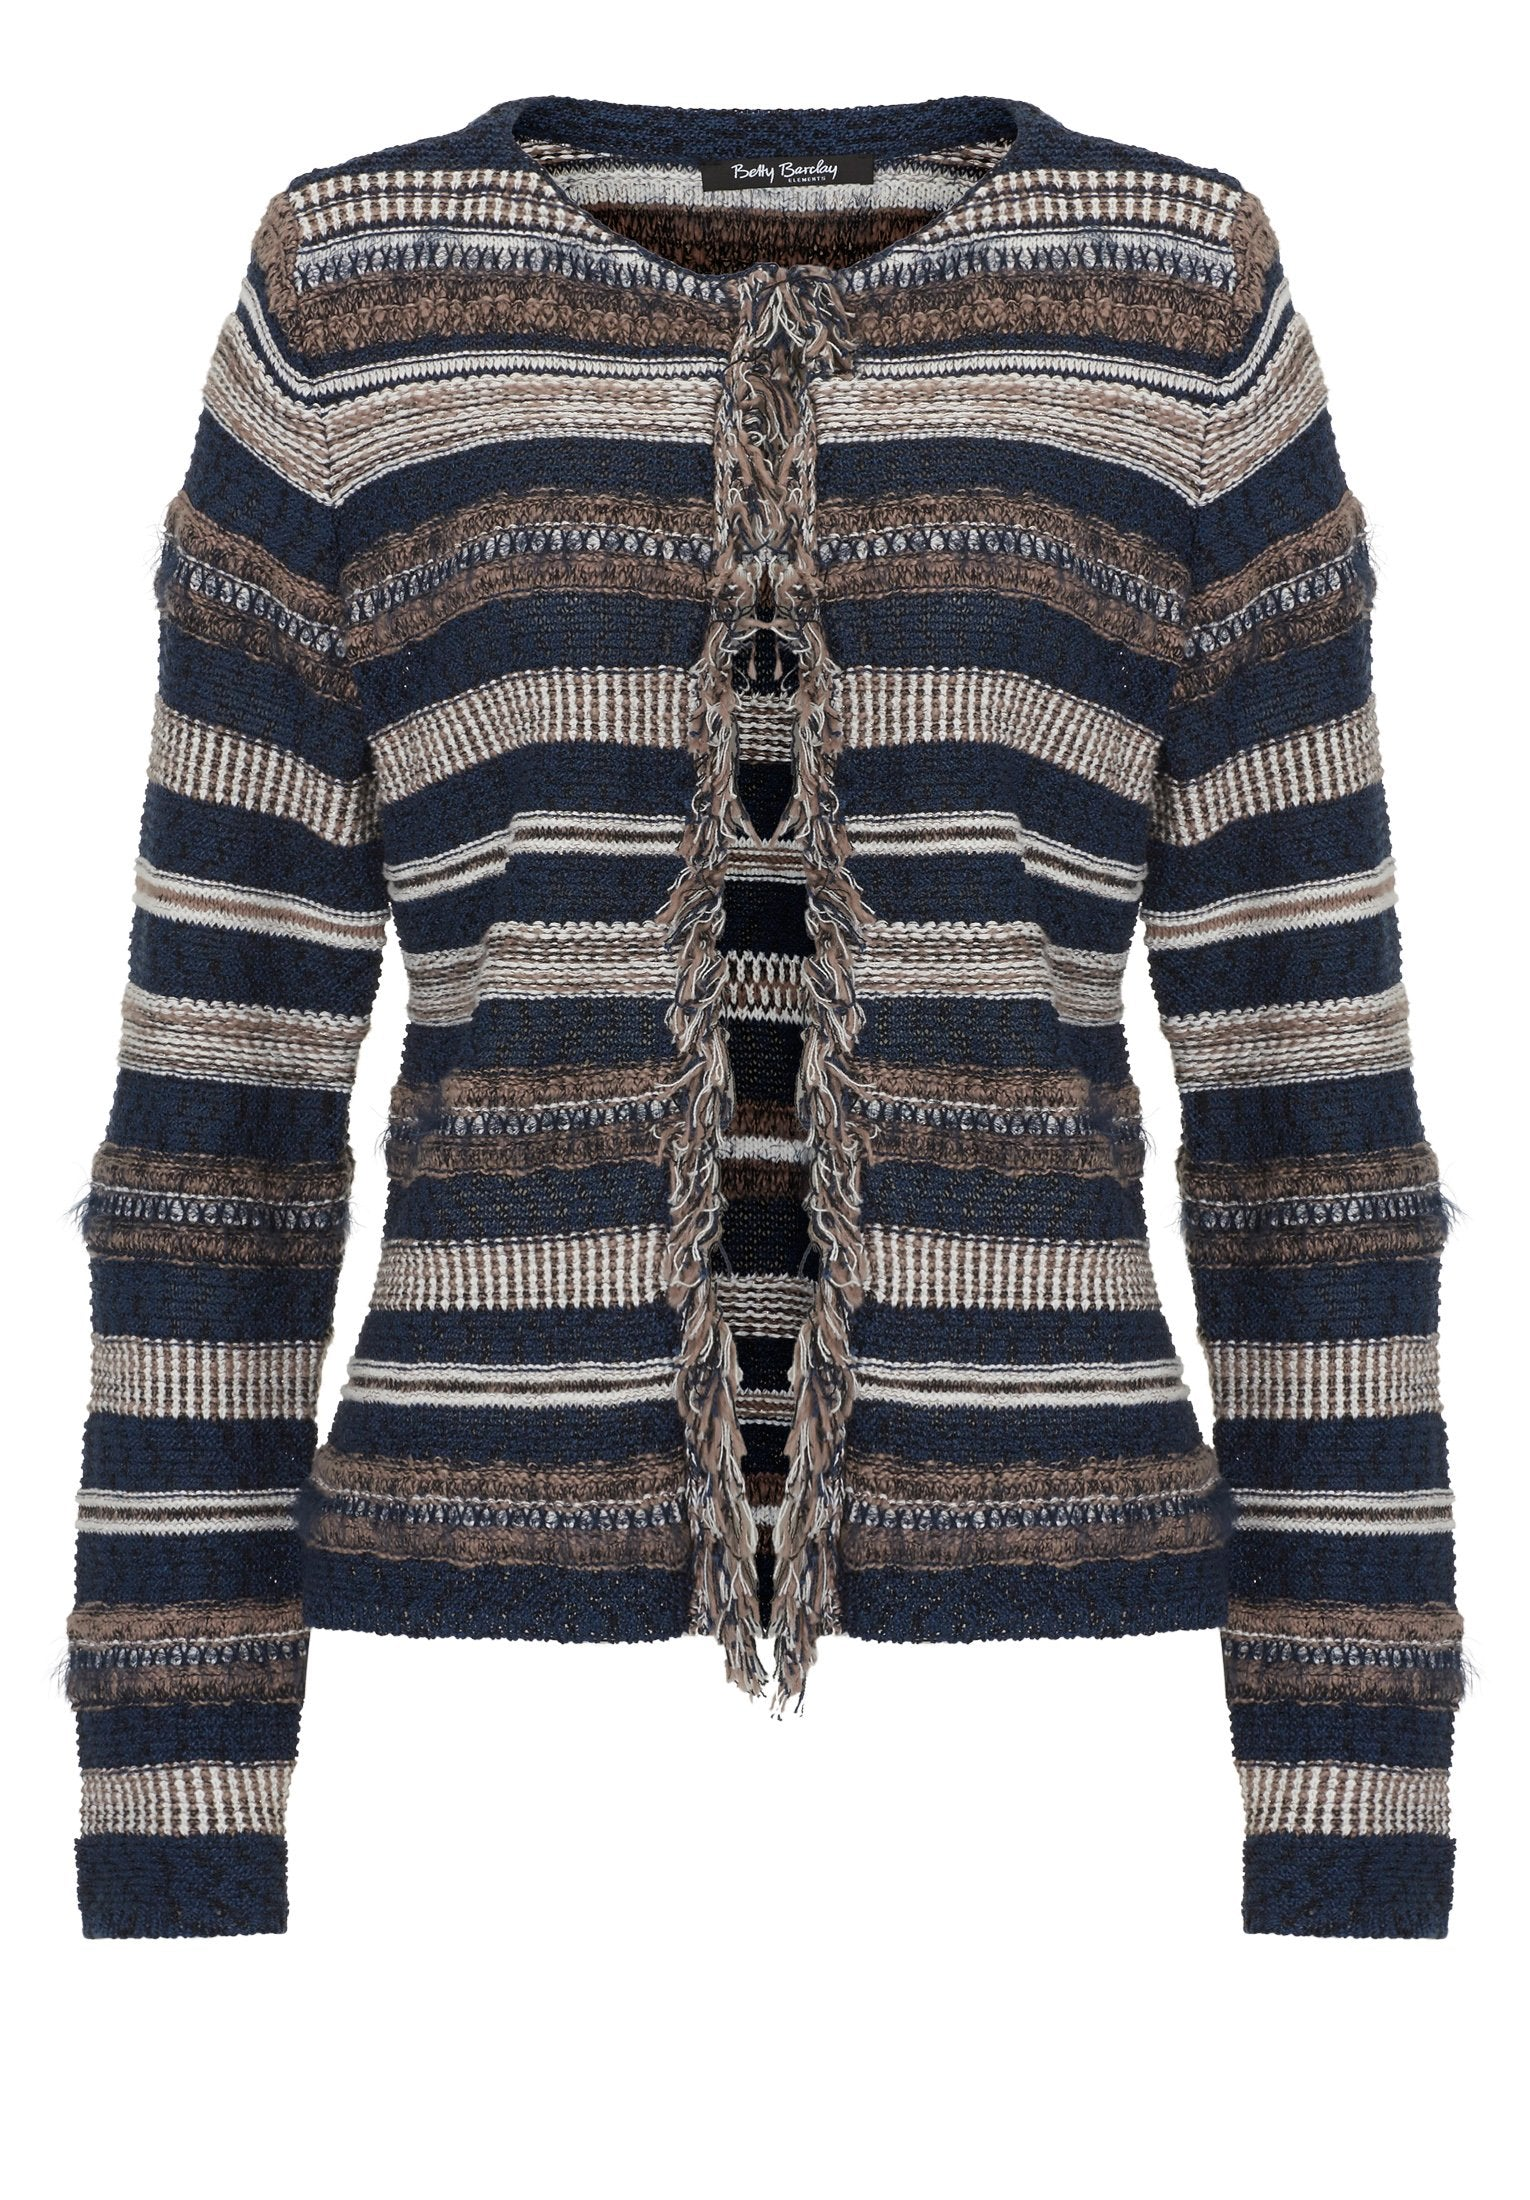 BETTY BARCLAY Multi-textured Stripe Cardigan